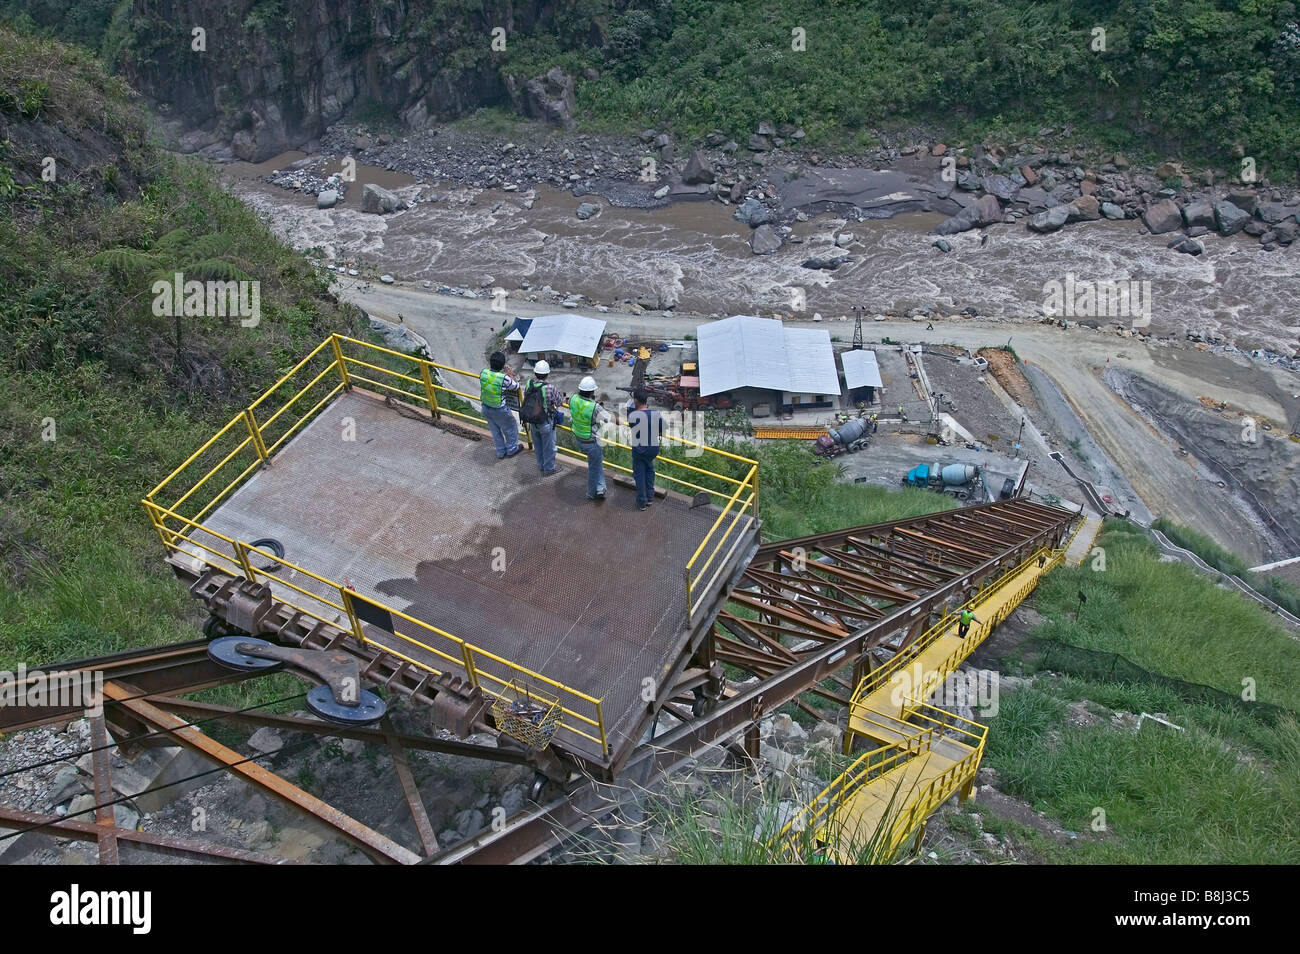 Conveyor system transporting materials and workers between upper and lower sites on a hydropower project in Ecuador. - Stock Image